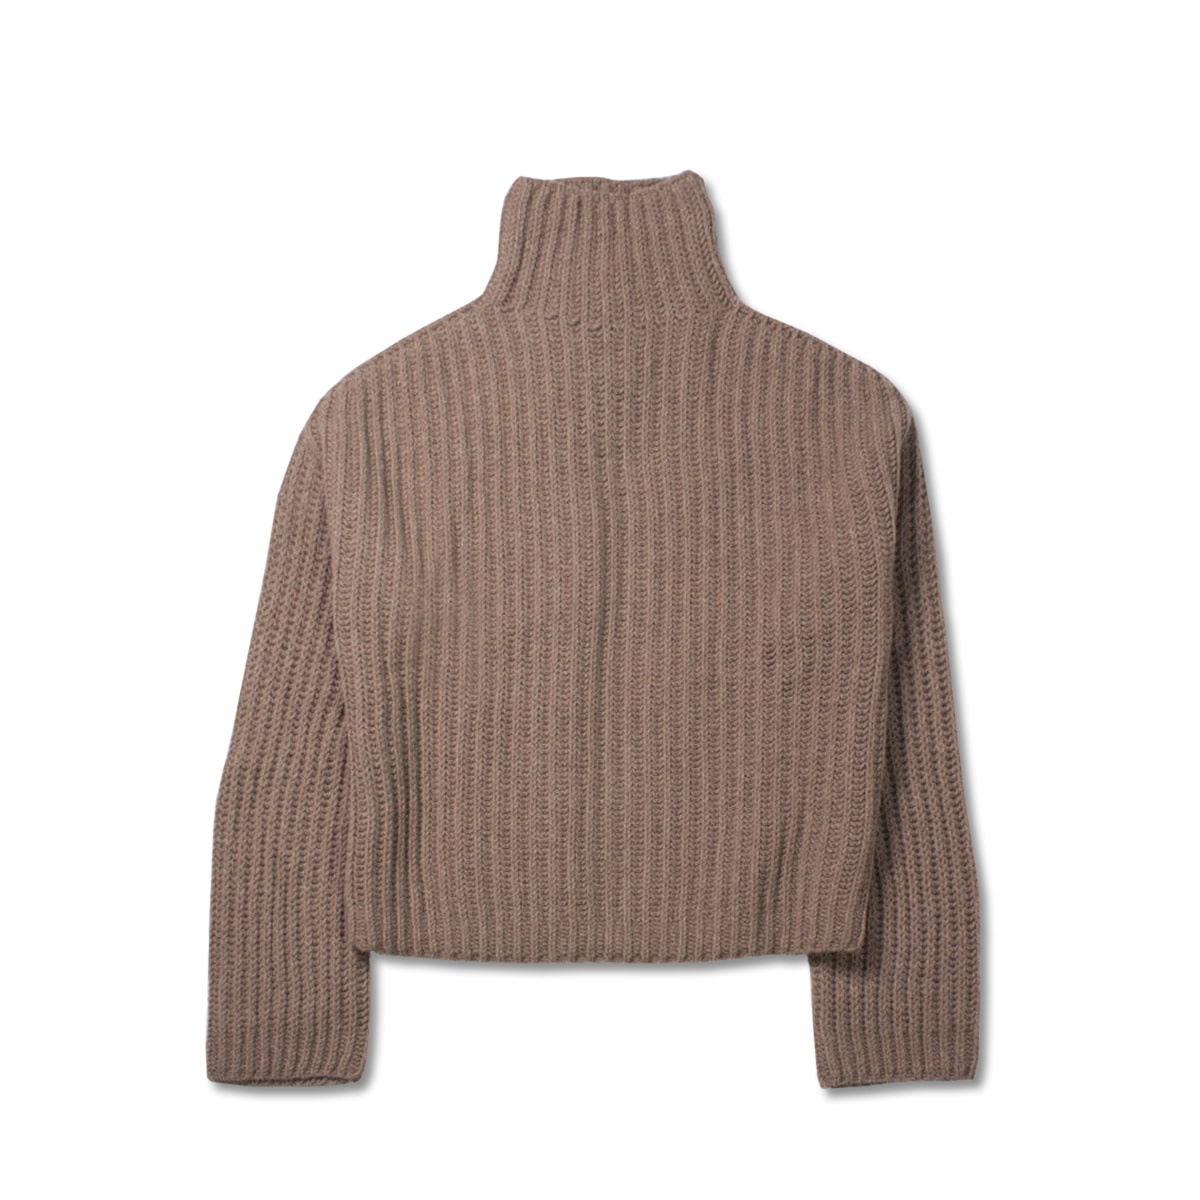 [STUDIO NICHOLSON] OVERSIZED HIGH NECK MERINO KNIT 'CAMEL'